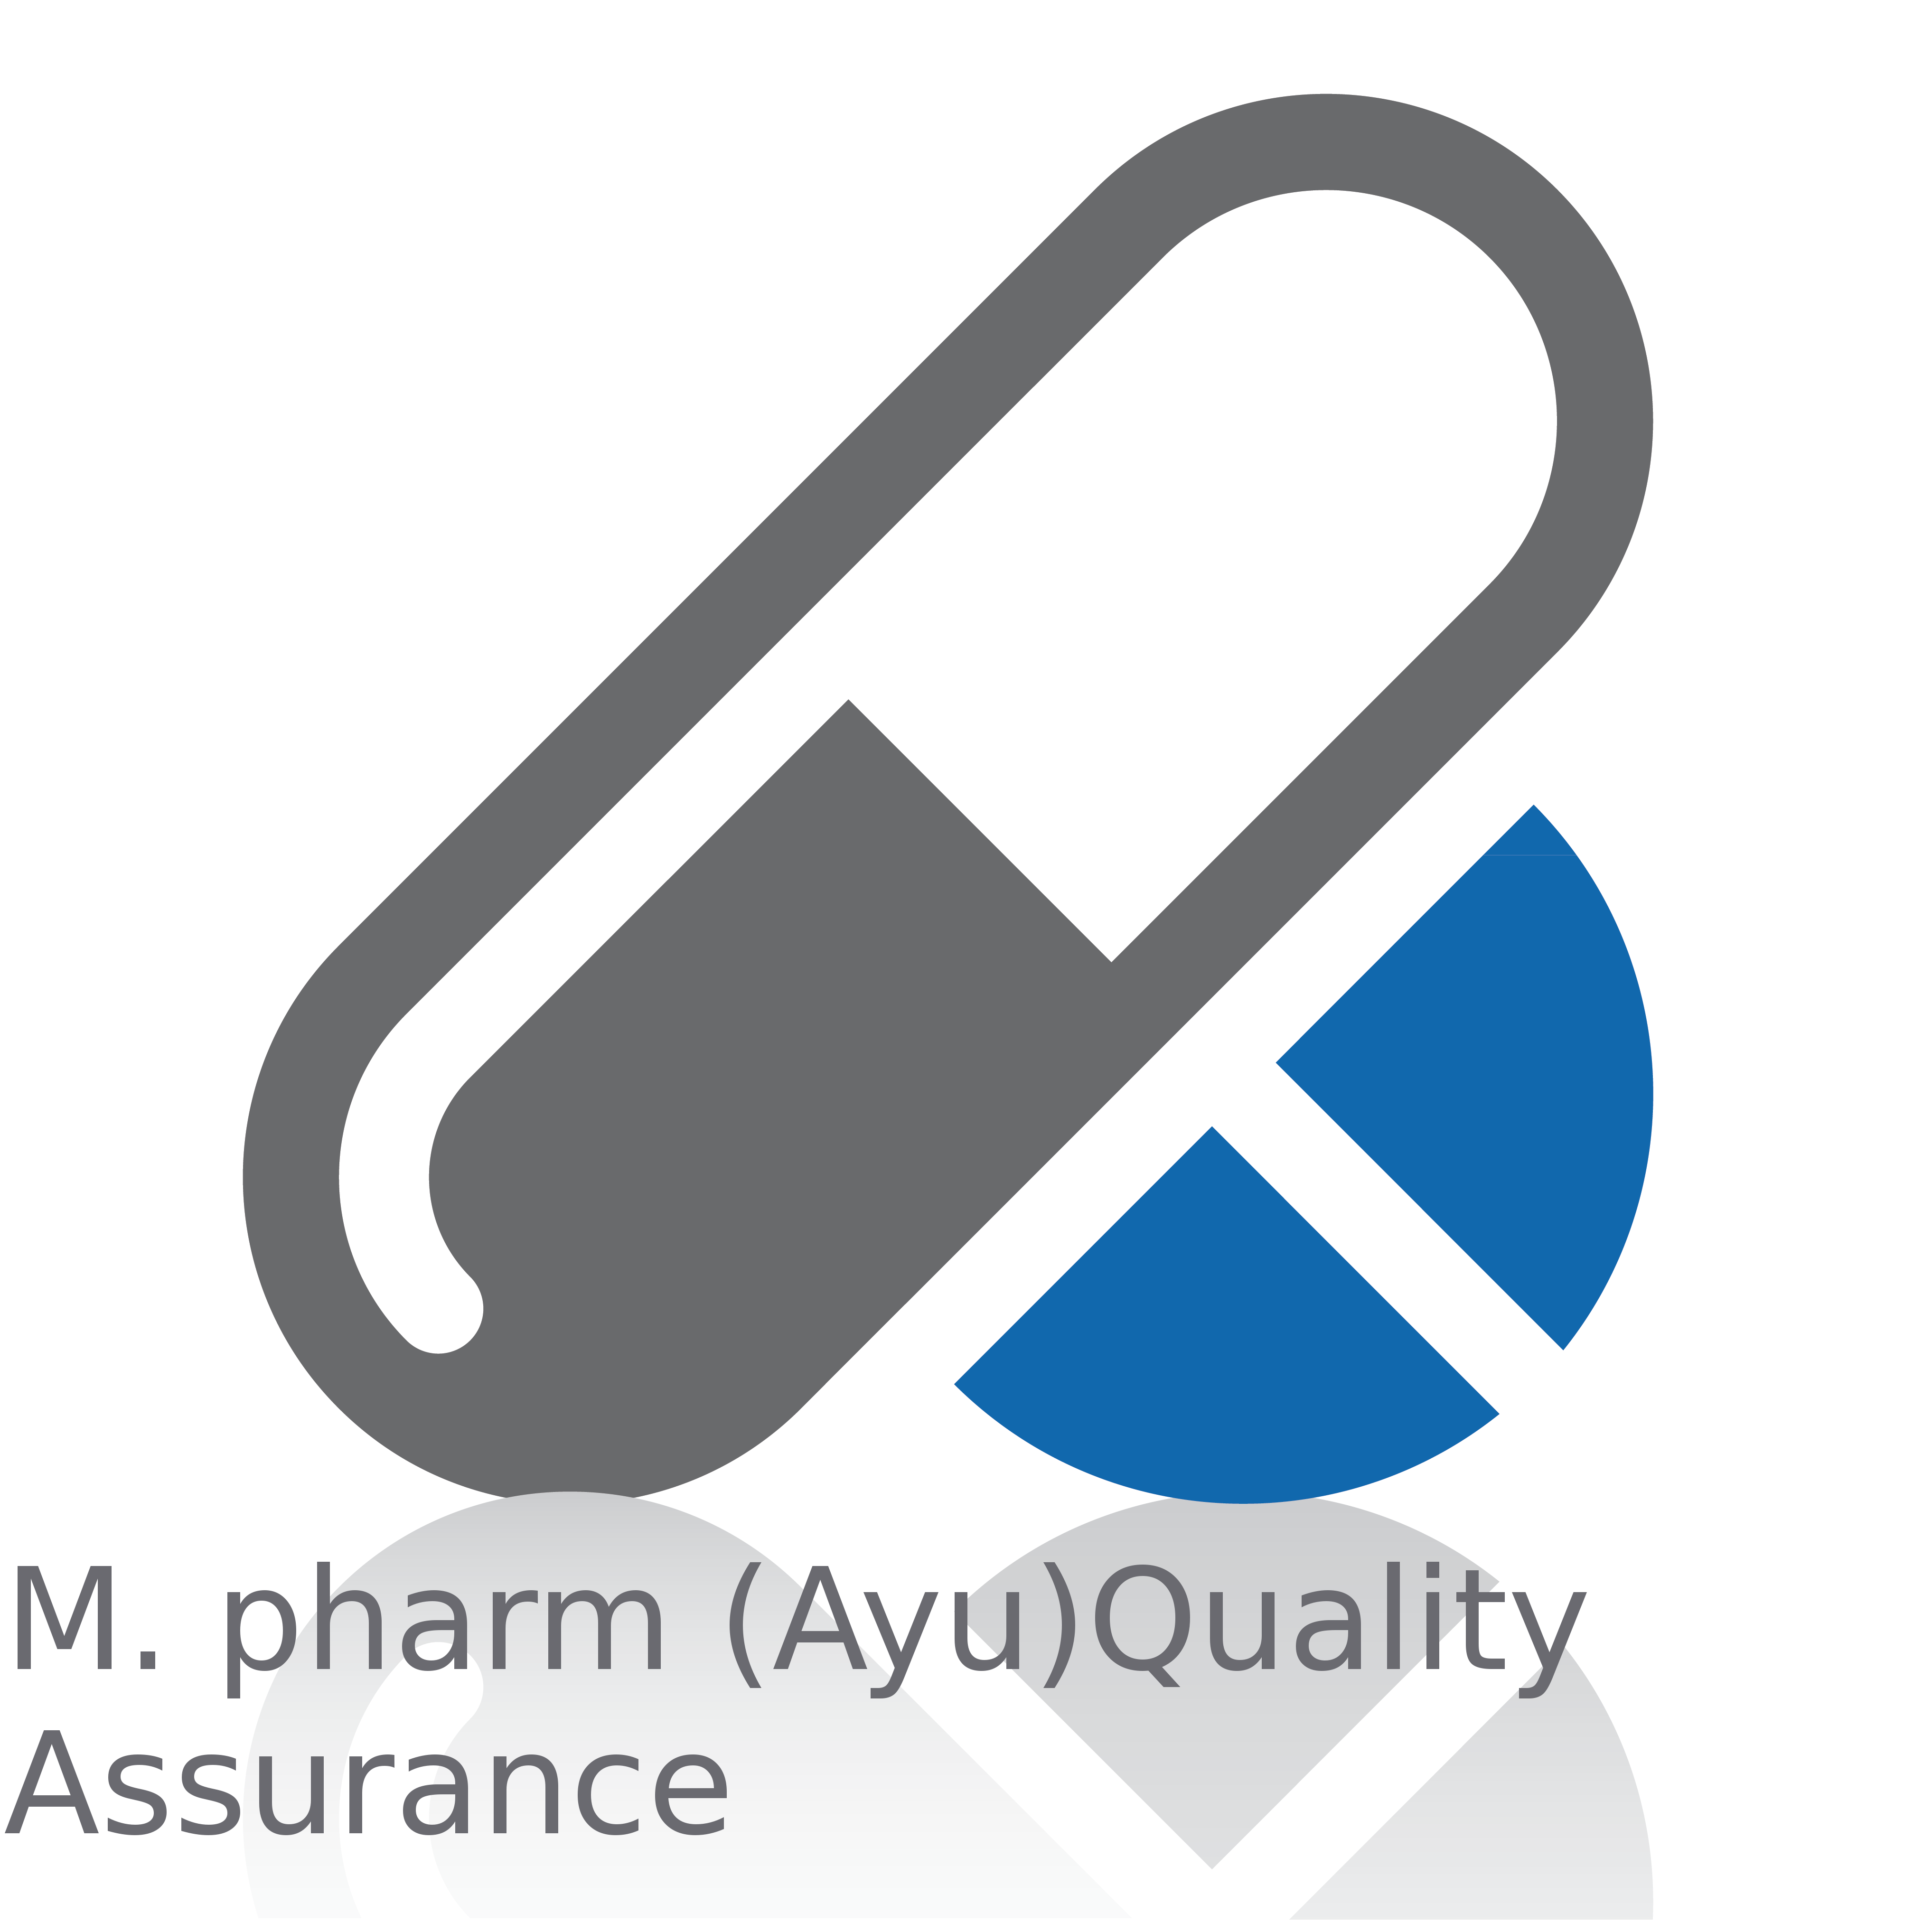 Master of Pharmacy (MPharm Ayu Quality Assurance)